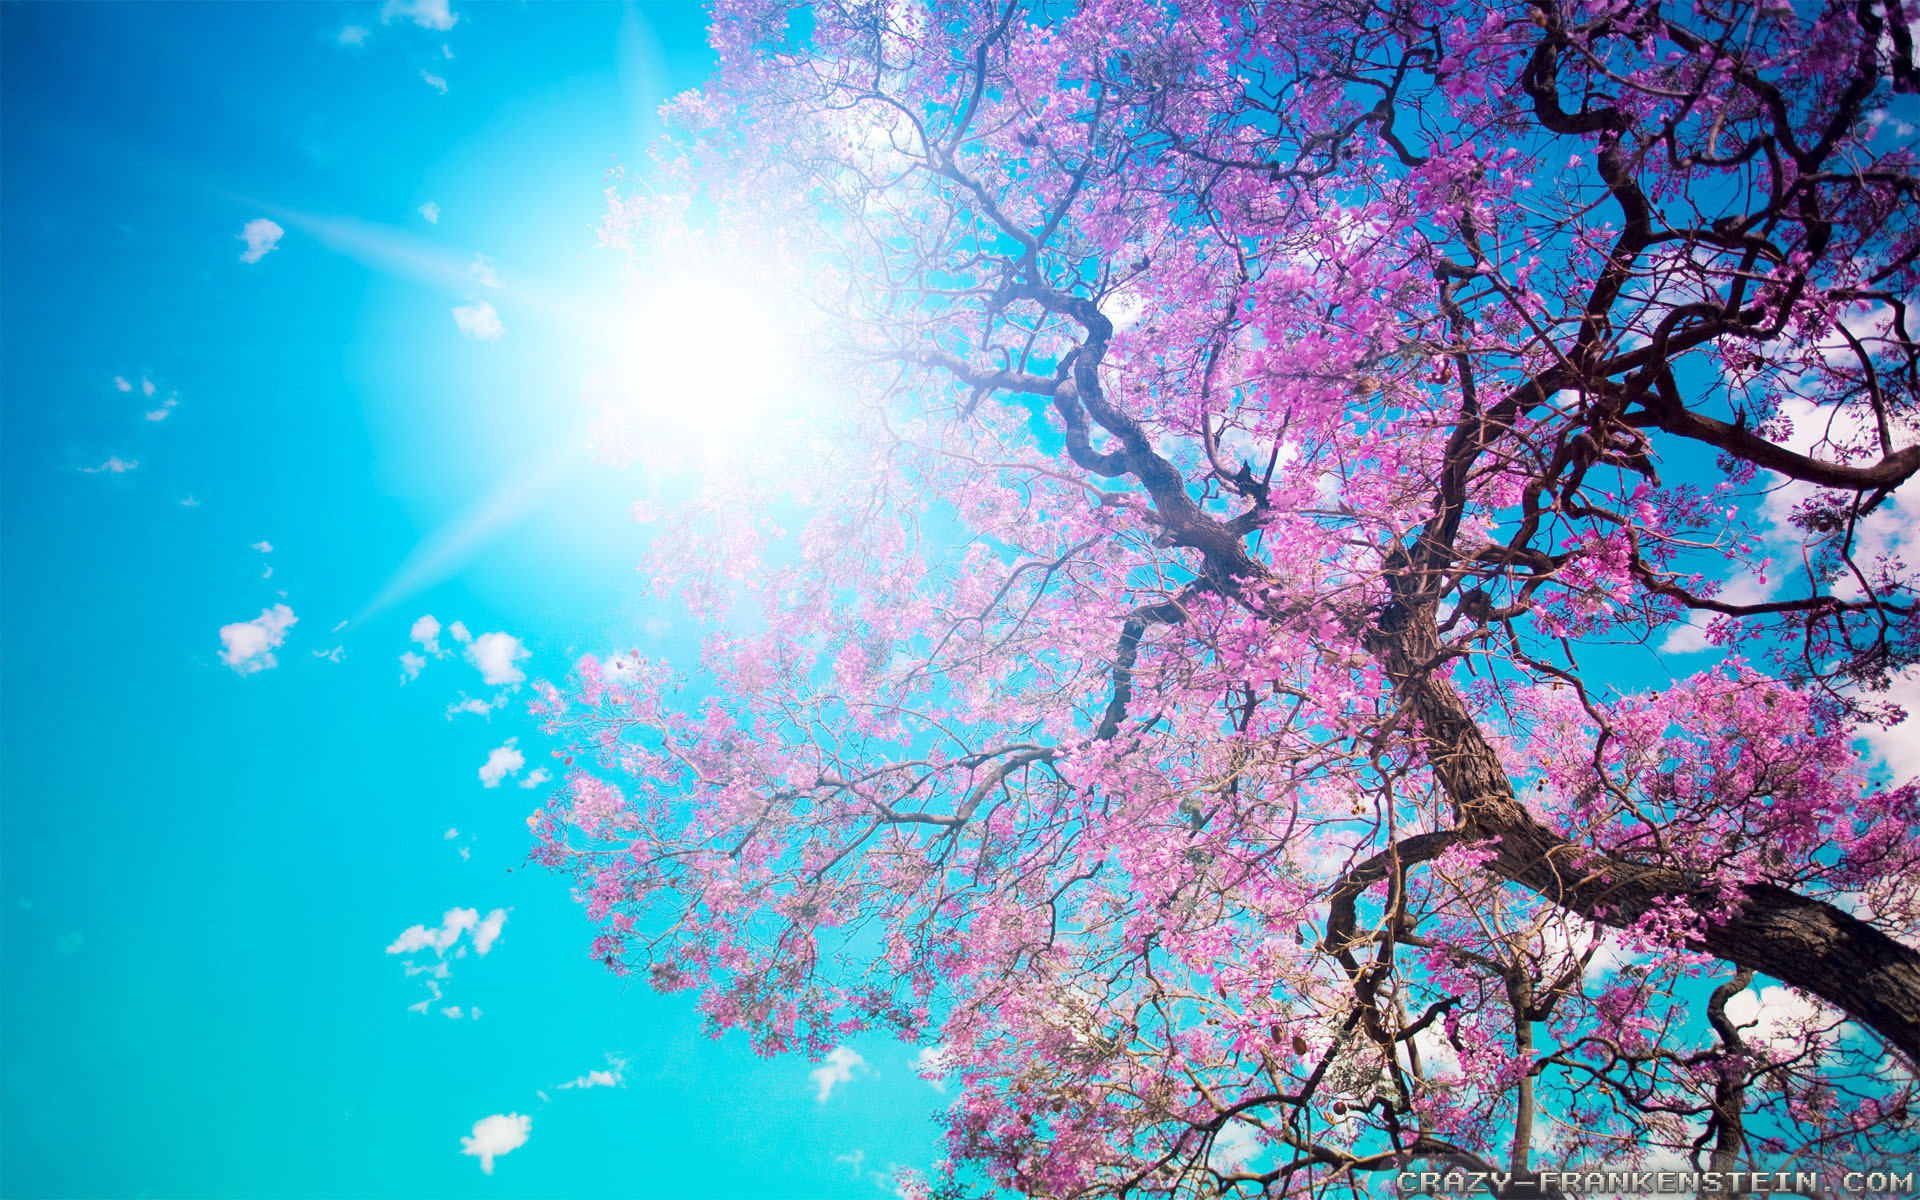 Wallpaper: Beautiful Spring nature wallpapers. Resolution: 1024×768 |  1280×1024 | 1600×1200. Widescreen Res: 1440×900 | 1680×1050 | 1920×1200